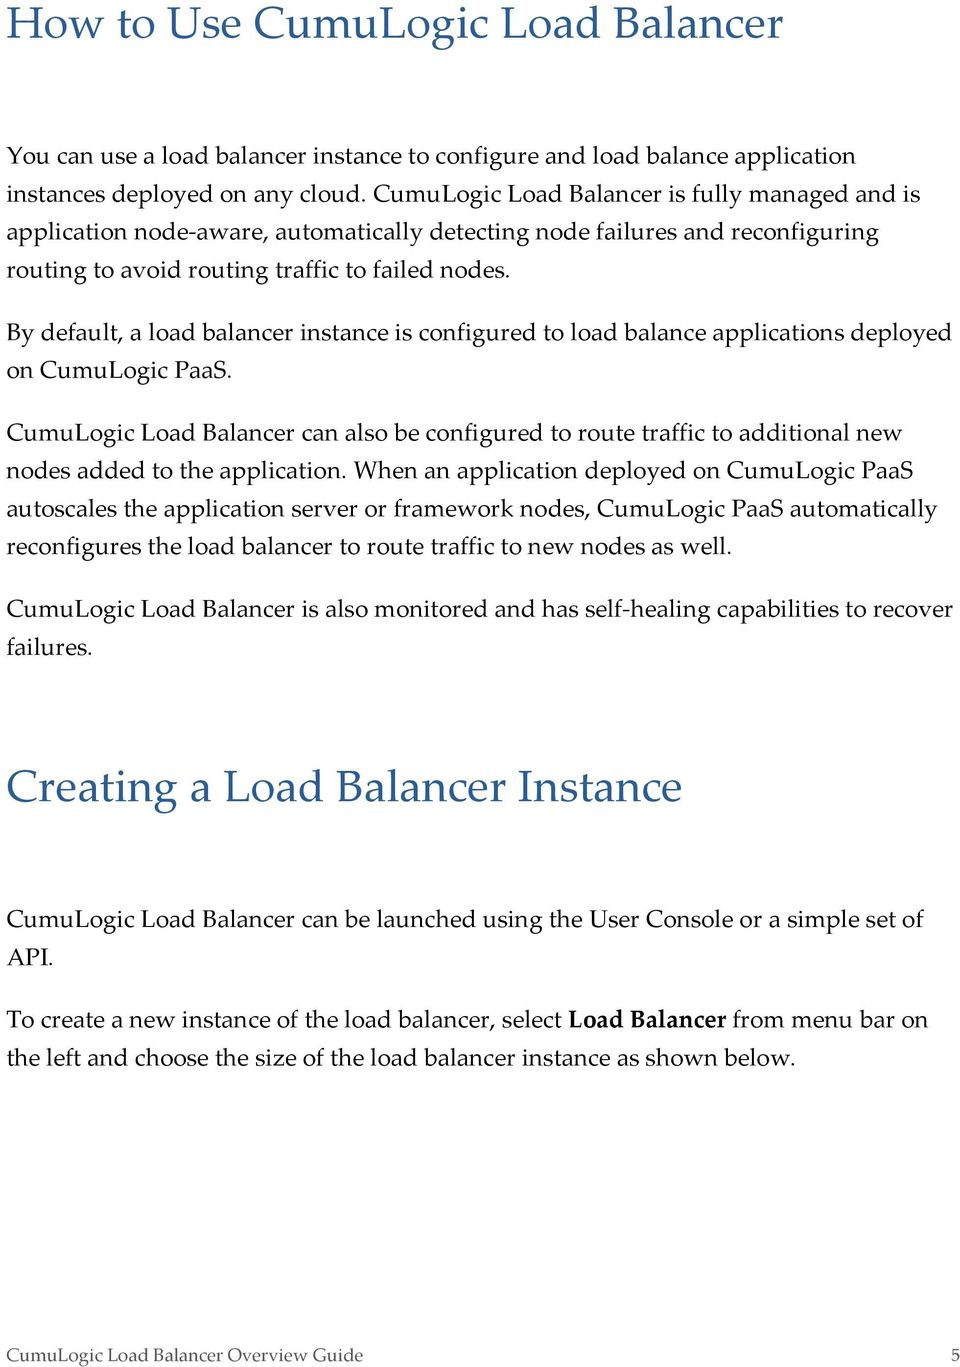 By default, a load balancer instance is configured to load balance applications deployed on CumuLogic PaaS.